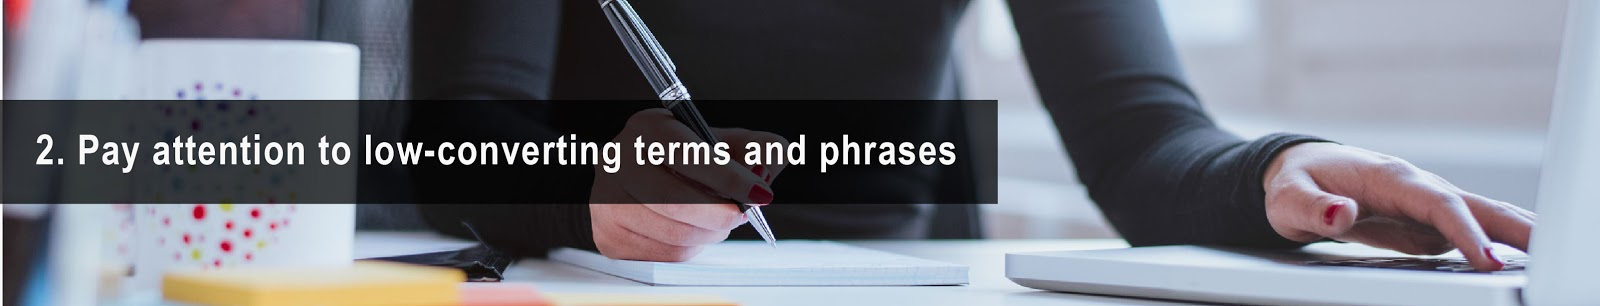 2. Pay attention to low converting terms and phrases